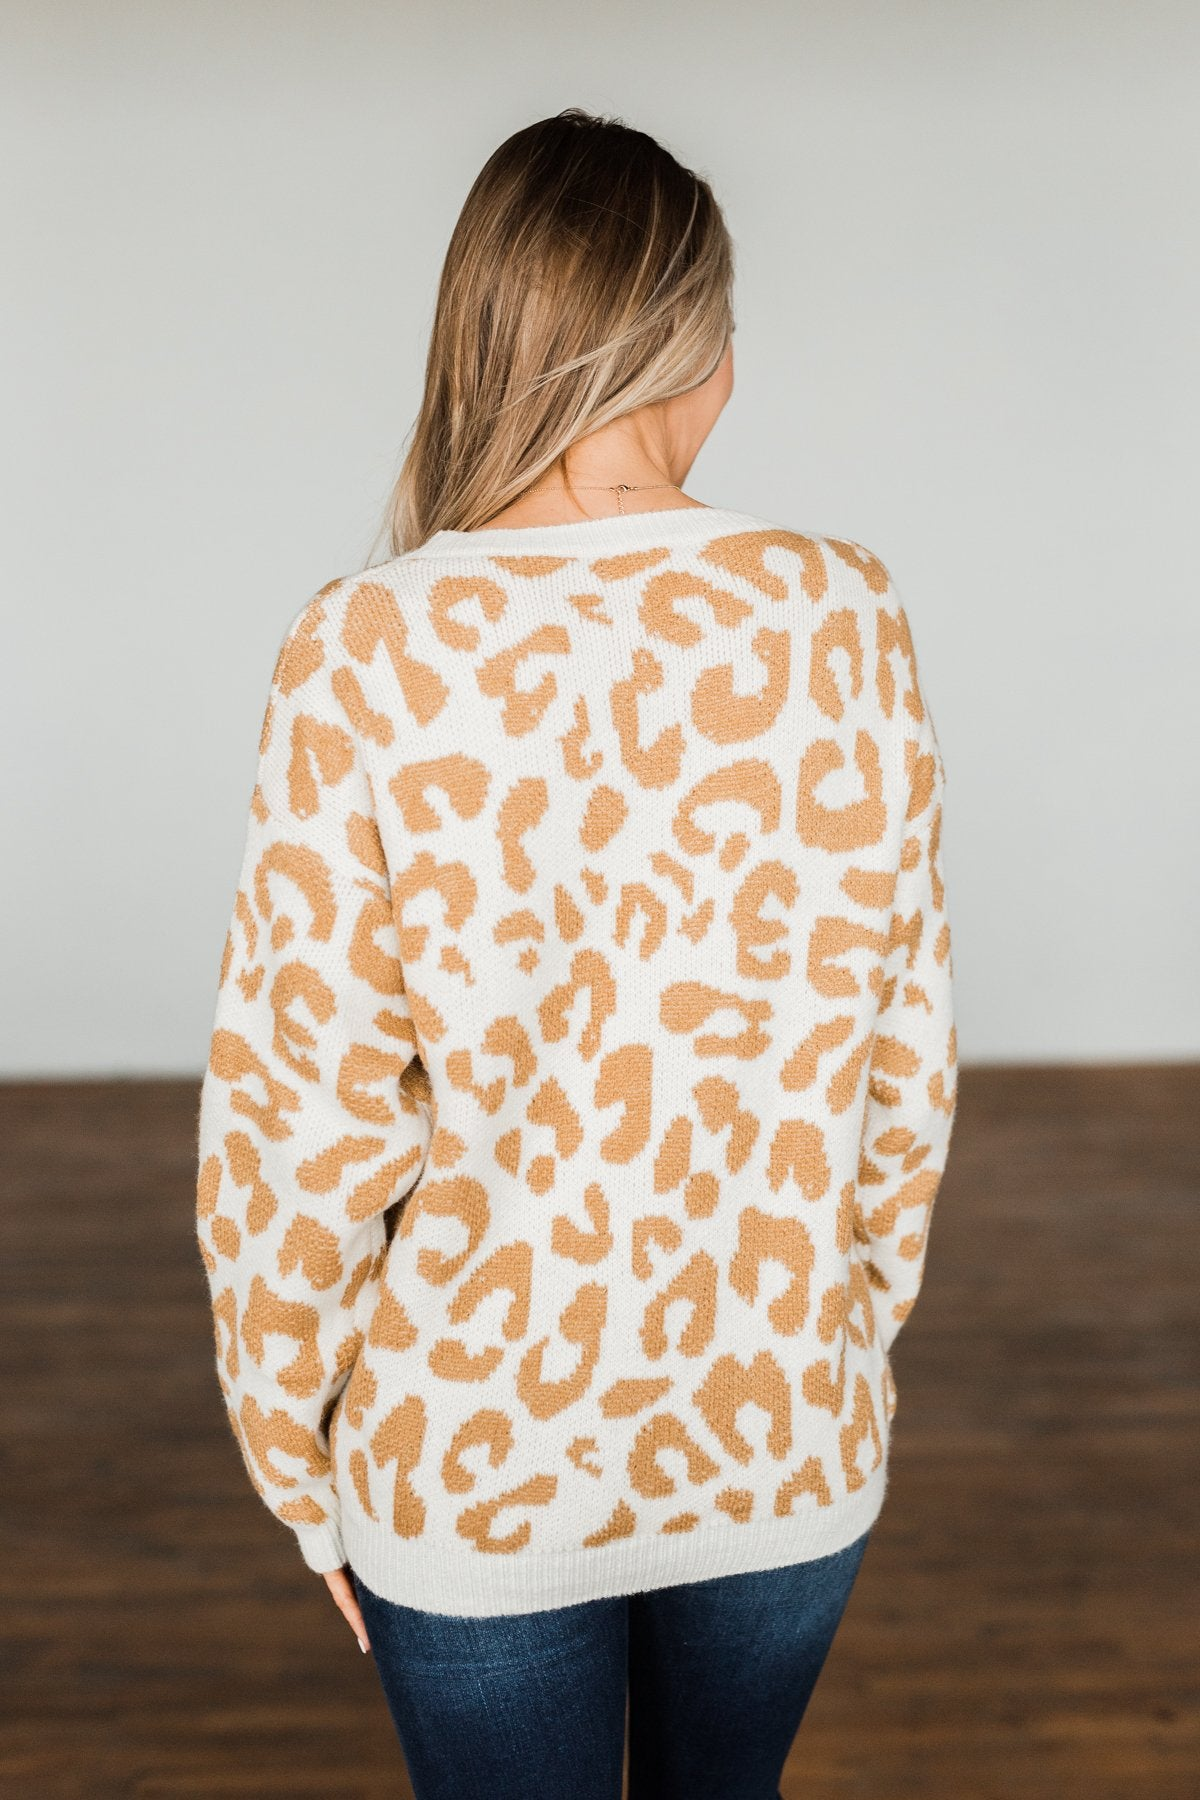 Good For The Soul Leopard Sweater- Ivory & Camel